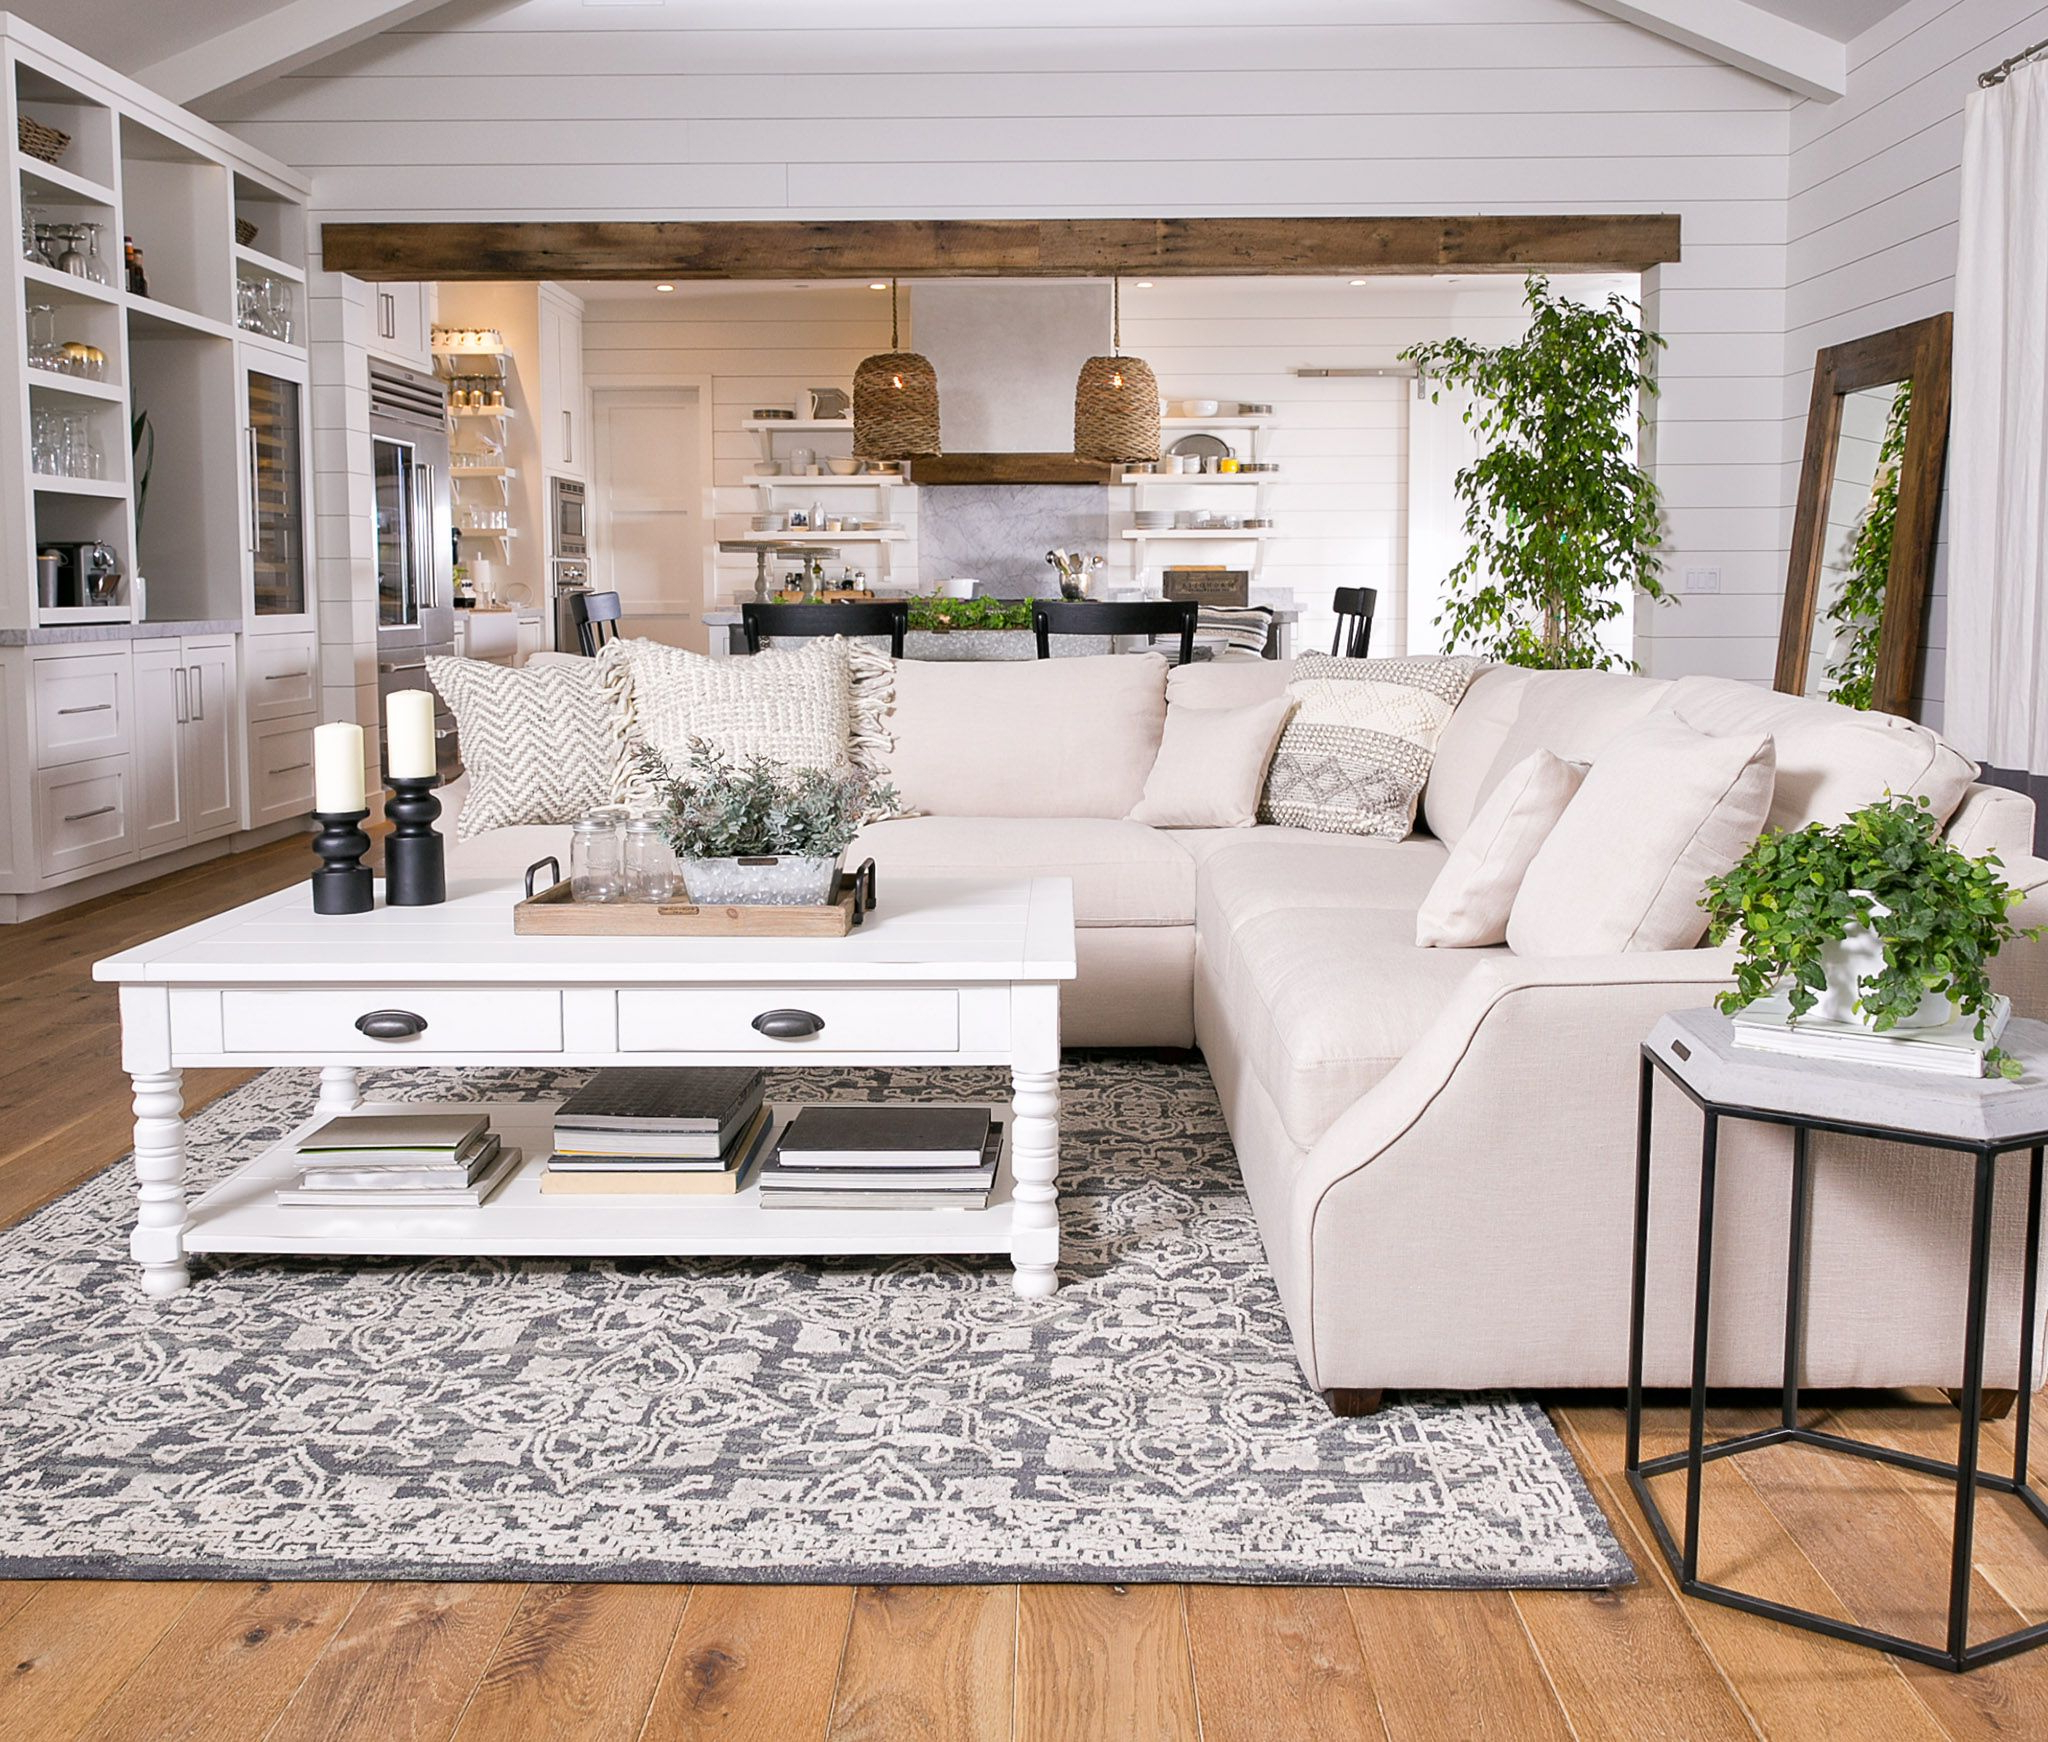 Trendy Magnolia Home Homestead 3 Piece Sectionaljoanna Gaines With Regard To Magnolia Home Homestead 4 Piece Sectionals By Joanna Gaines (View 13 of 20)